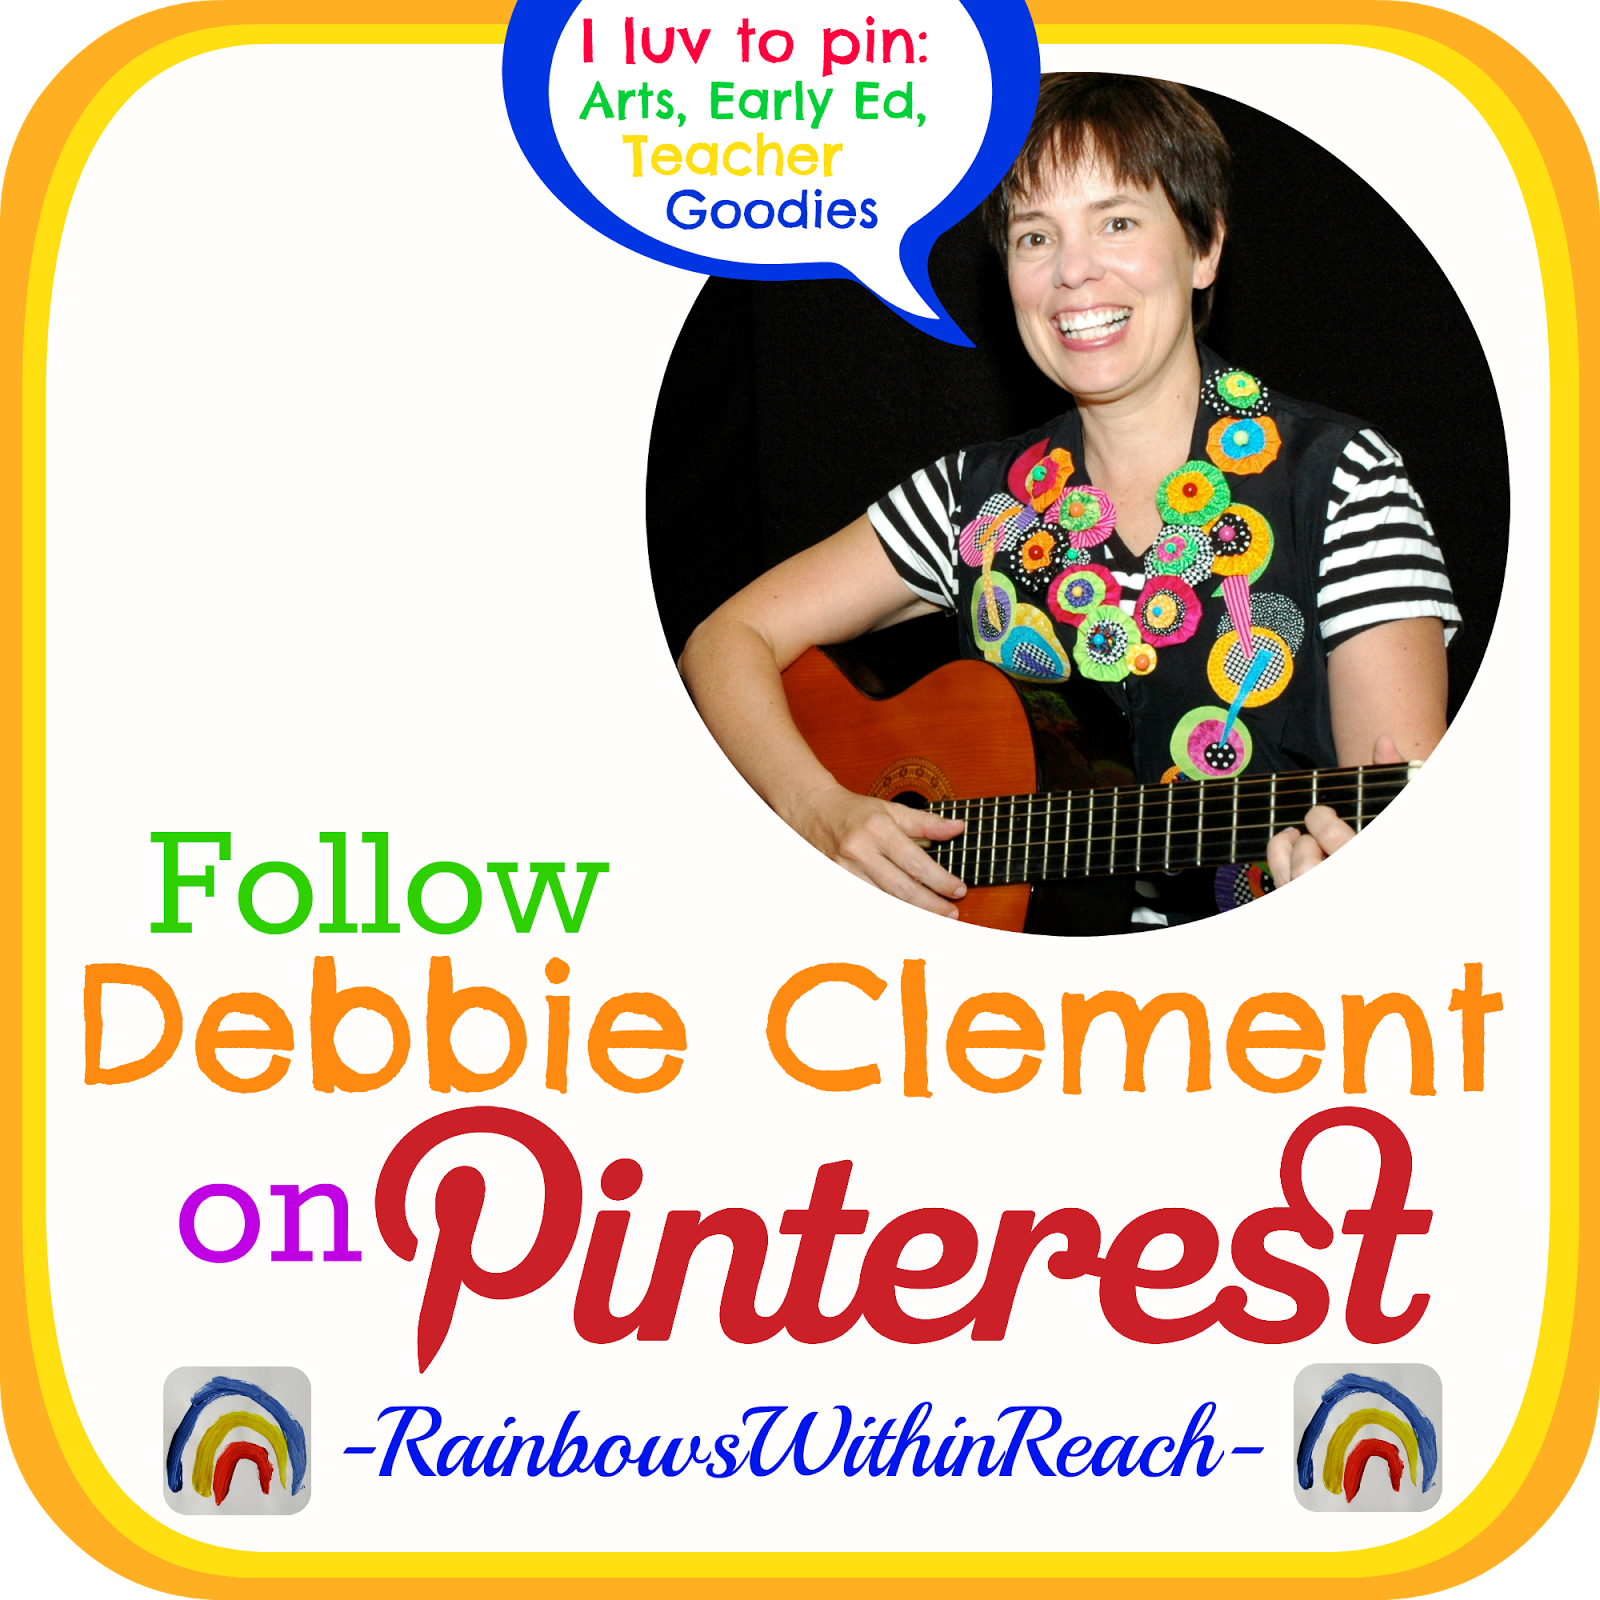 Follow Debbie Clement on Pinterest for Arts & ECE Teacher Goodies